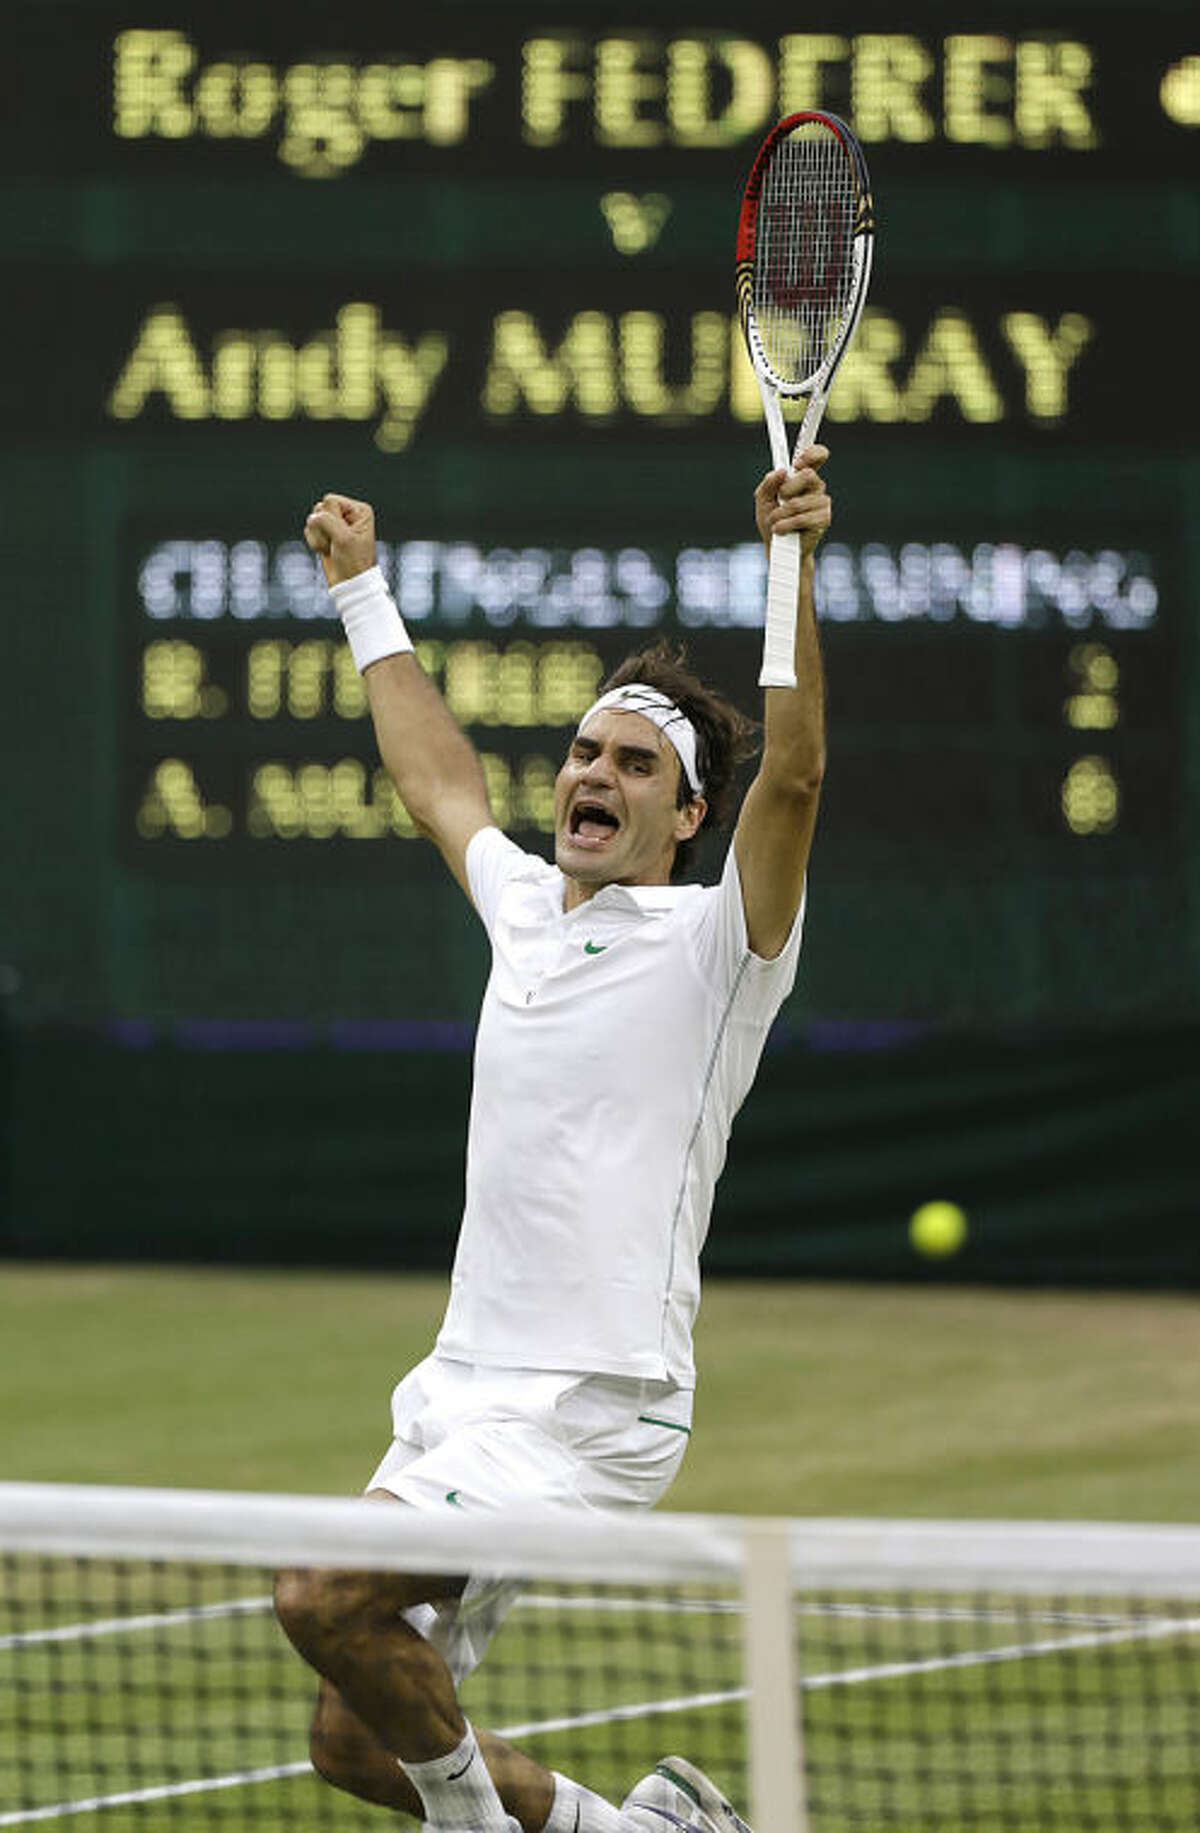 """FILE - In this Sunday, July 8, 2012 file photo, Roger Federer of Switzerland celebrates winning the men's singles final against Andy Murray of Britain at the All England Lawn Tennis Championships at Wimbledon, England. Anja Niedringhaus, a courageous and immensely talented Associated Press photographer who has covered everything from sports to war, was killed while covering elections in Afghanistan on Friday April 4, 2014. Niedringhaus was in a car in eastern Afghanistan with AP reporter Kathy Gannon when, according to a freelancer who was with them, an Afghan policeman approached them, yelled """"Allahu Akbar"""" _ God is Great _ and opened fire on them in the back seat with his AK-47. Niedringhaus was killed instantly and Gannon was wounded. (AP Photo/Anja Niedringhaus, File)"""